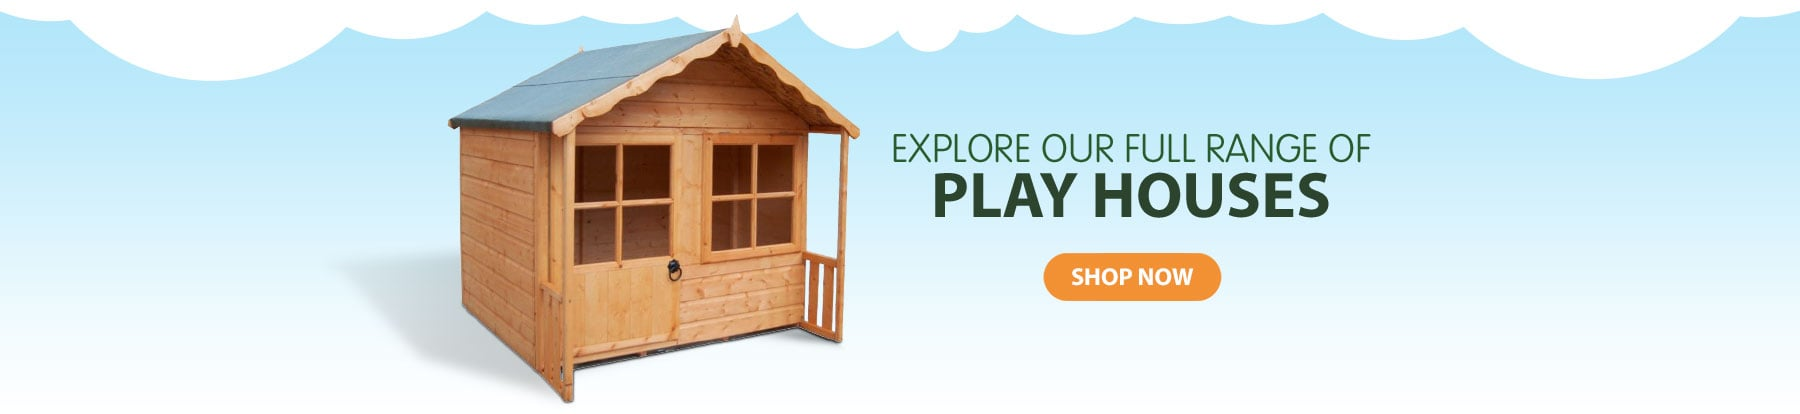 Explore Our Full Range of Playhouses